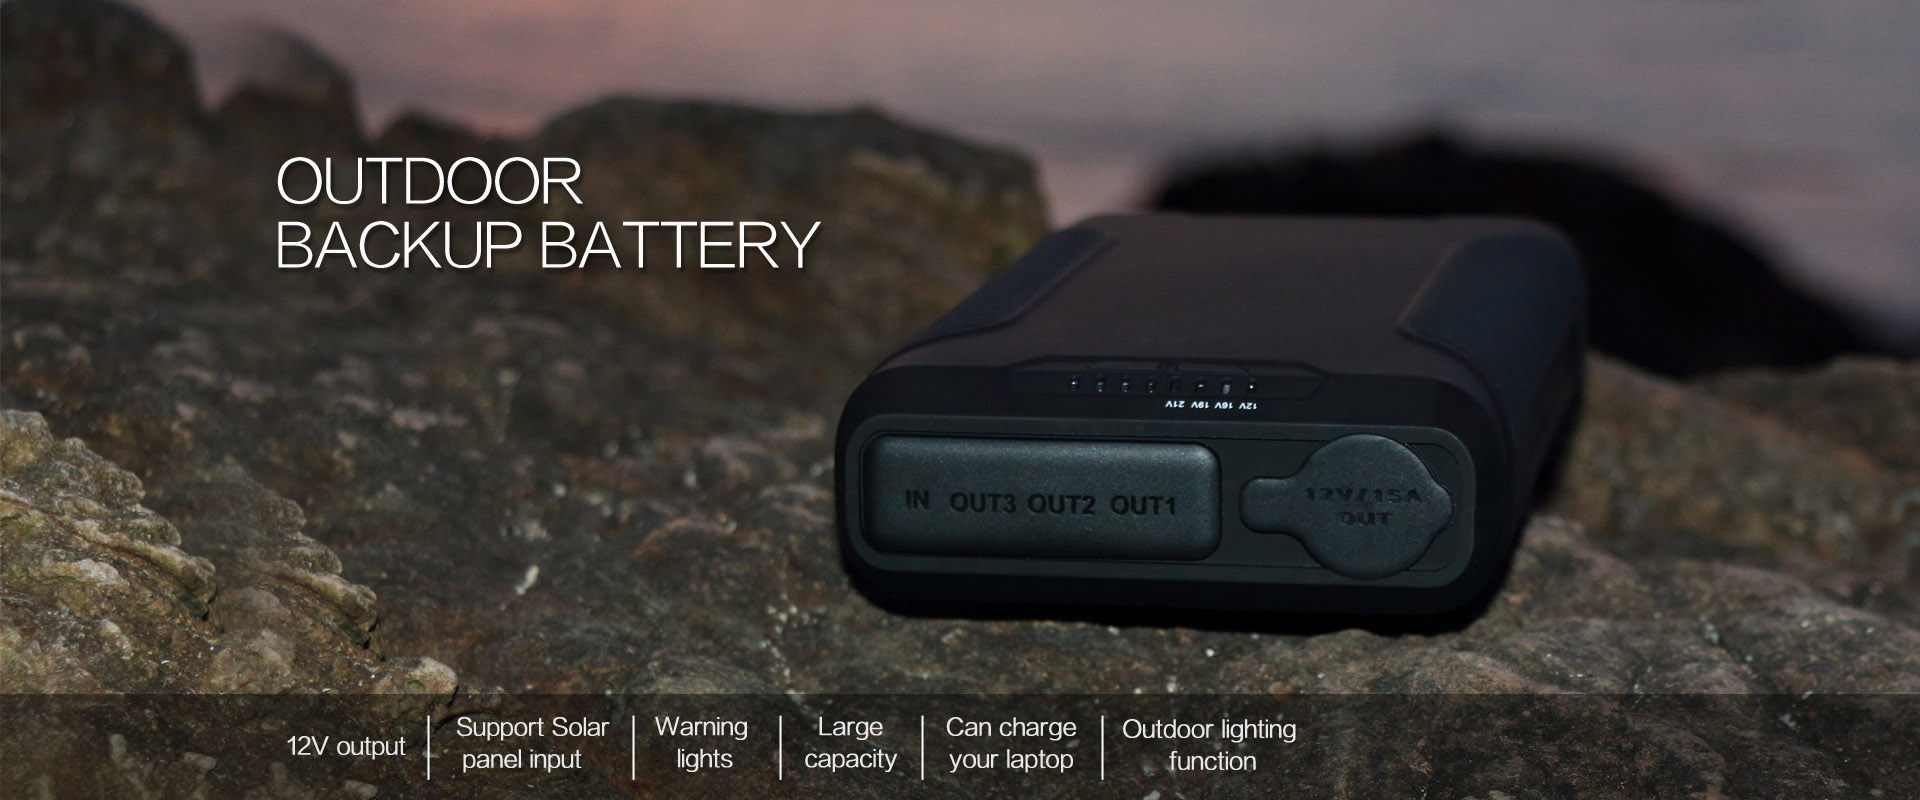 12v outdoor backup battery